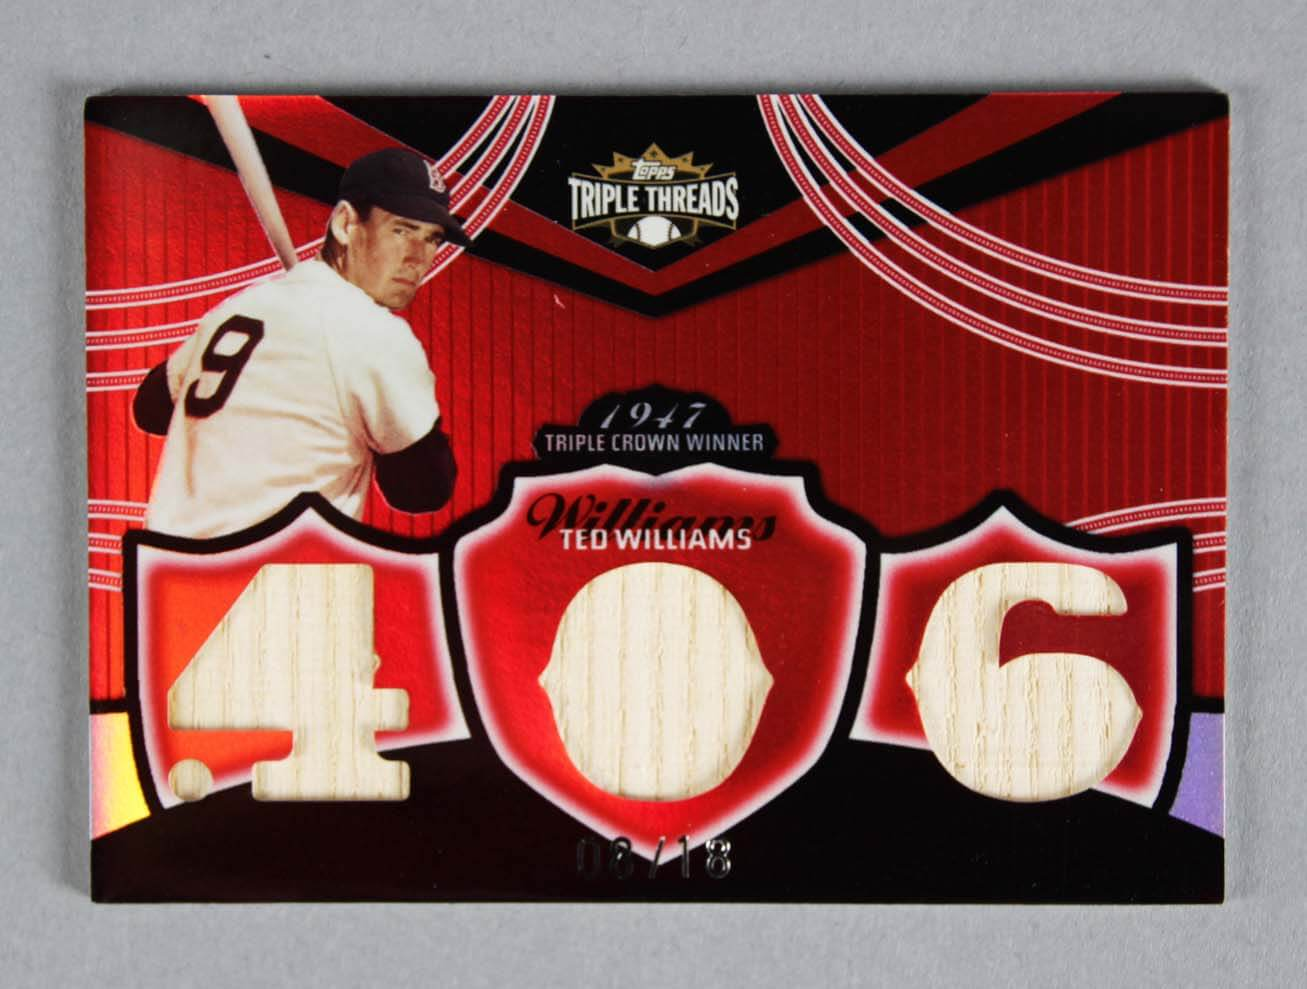 2006 Topps Triple Threads Ted Williams Game-Used Red Sox Bat Baseball Card 8/18